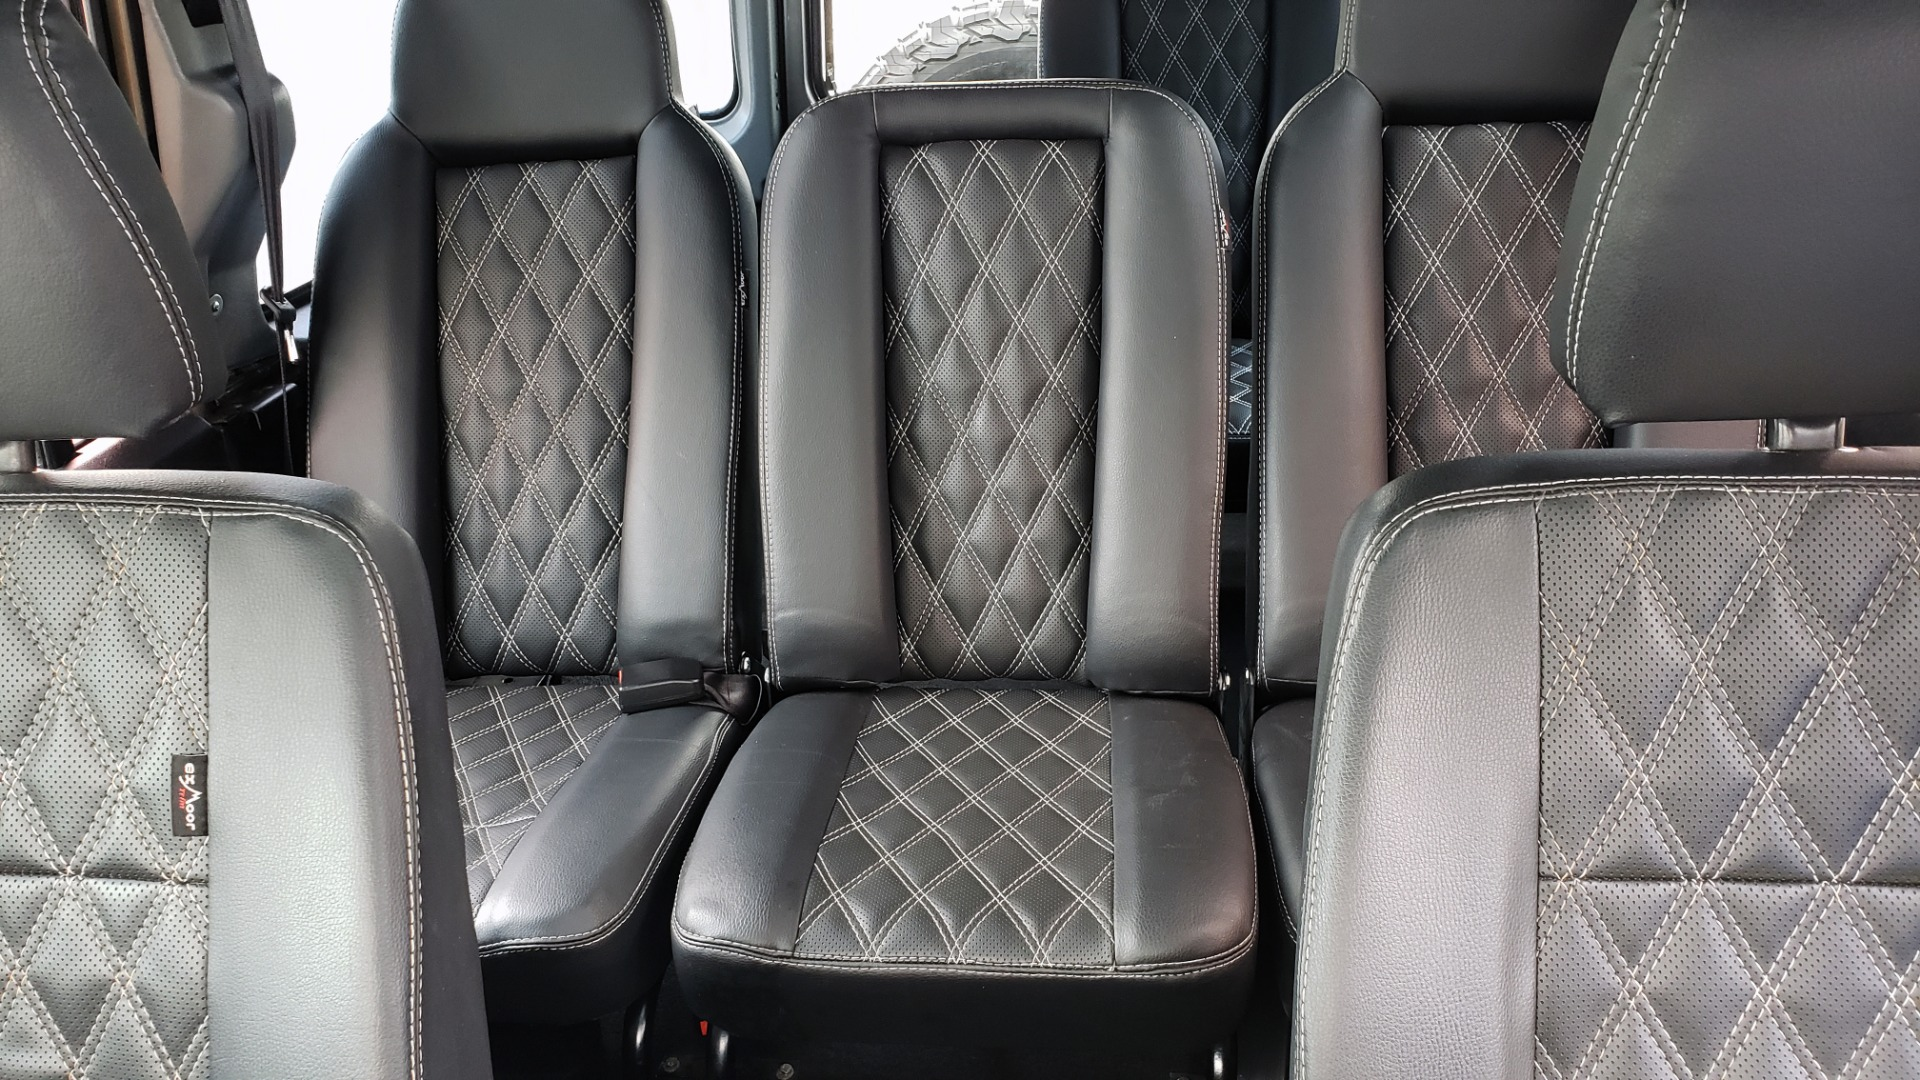 Used 1988 Land Rover DEFENDER 110 CUSTOM 4X4 / LS V8 / PUSH BUTTON AUTO / LEATHER / ROOF RACK for sale $147,888 at Formula Imports in Charlotte NC 28227 54